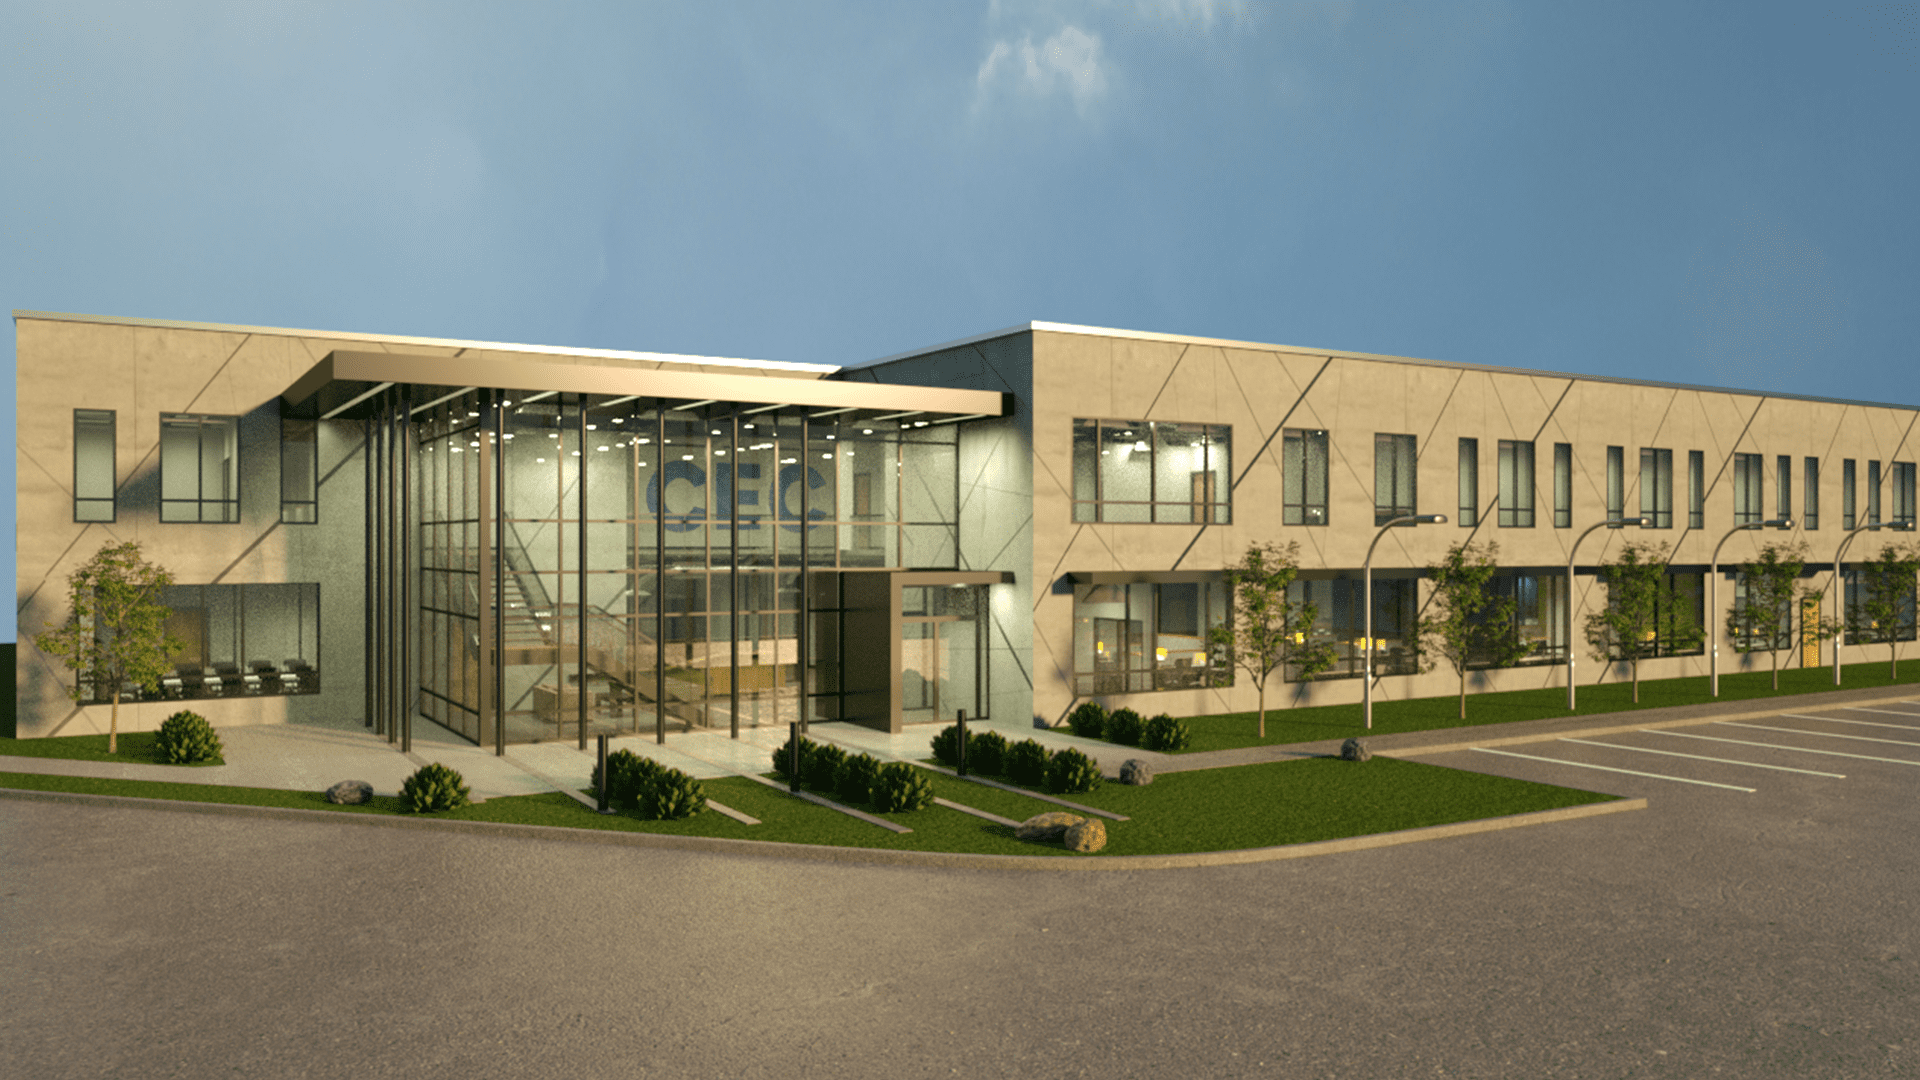 Office Headquarters Building Exterior render with big class windows in the lobby and a large parking area in front